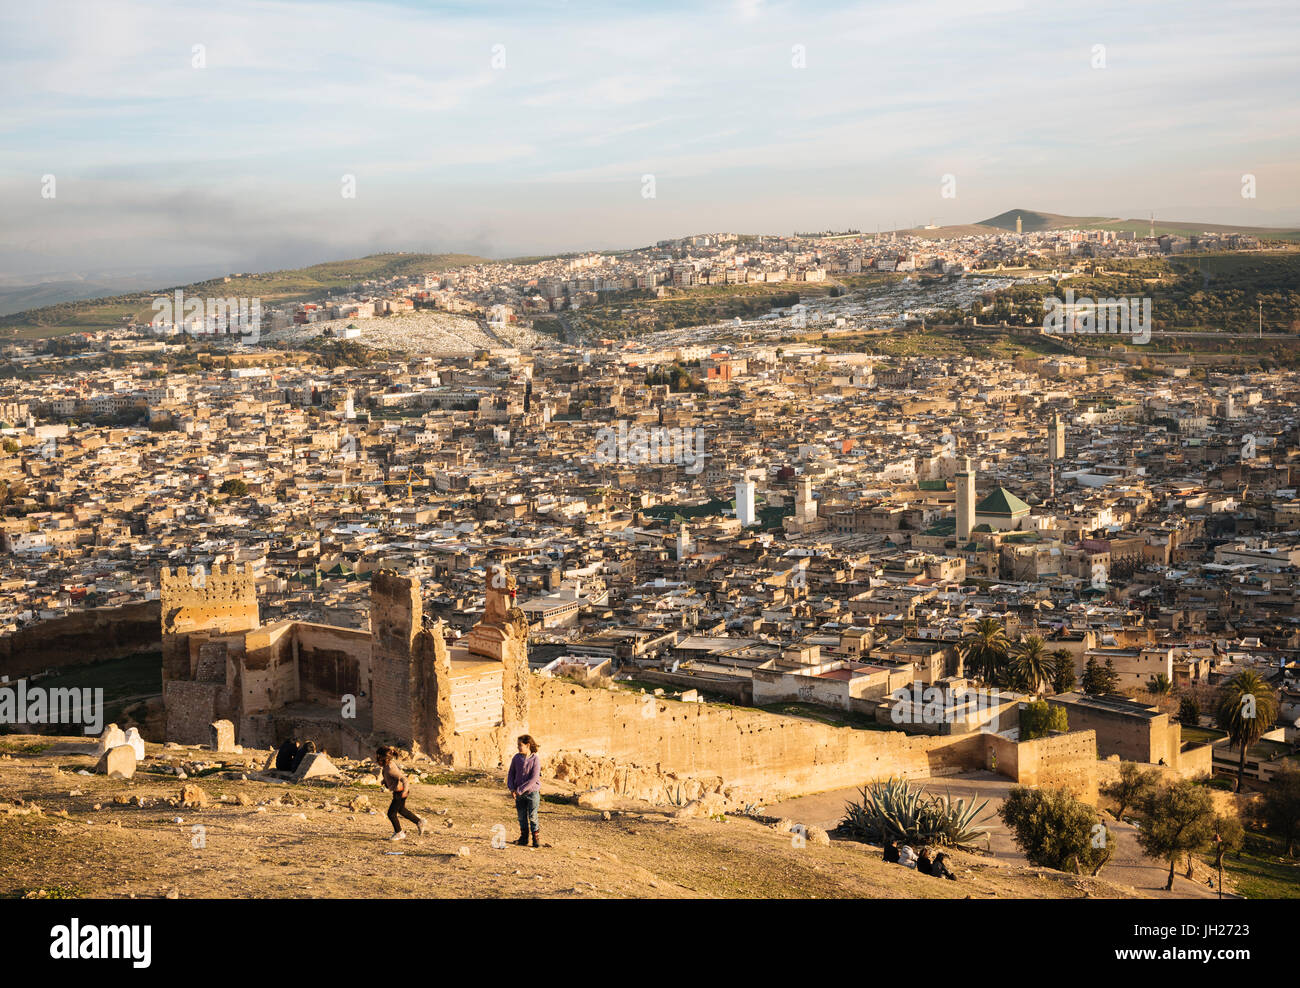 View over city from Merenid Tombs at sunset, Fes, Morocco, North Africa, Africa - Stock Image